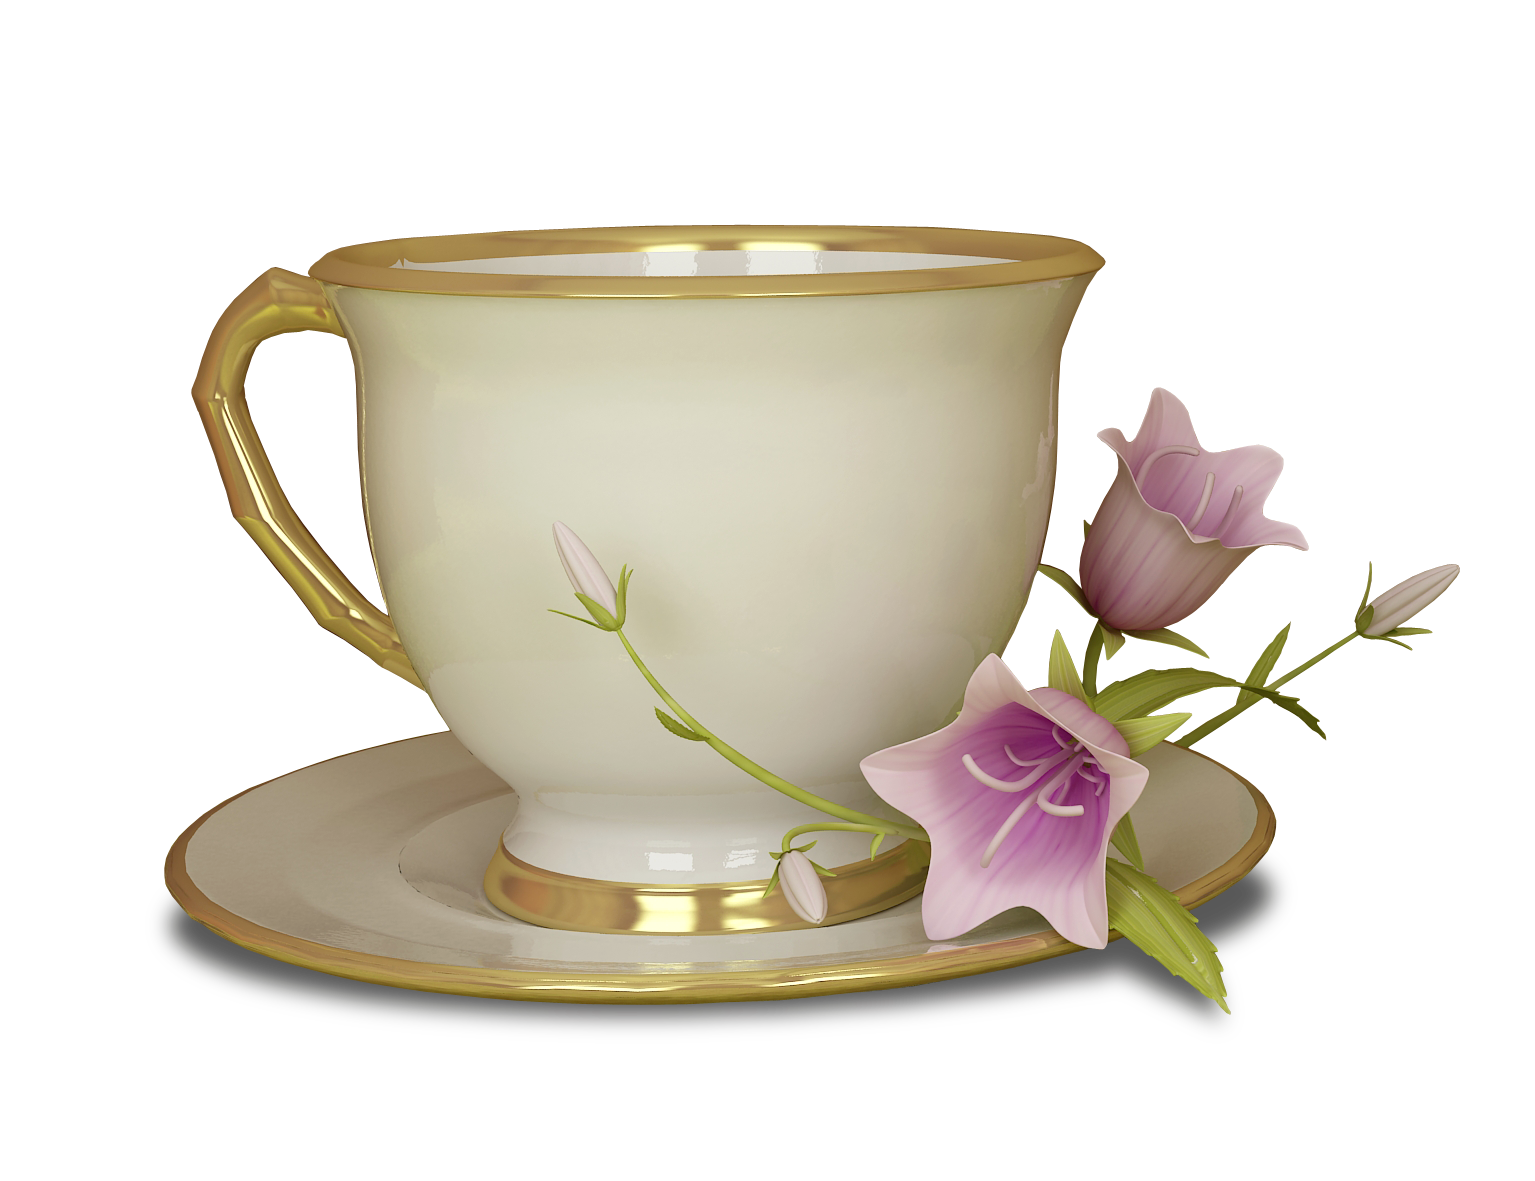 Cup clipart high resolution. Cream and gold tea